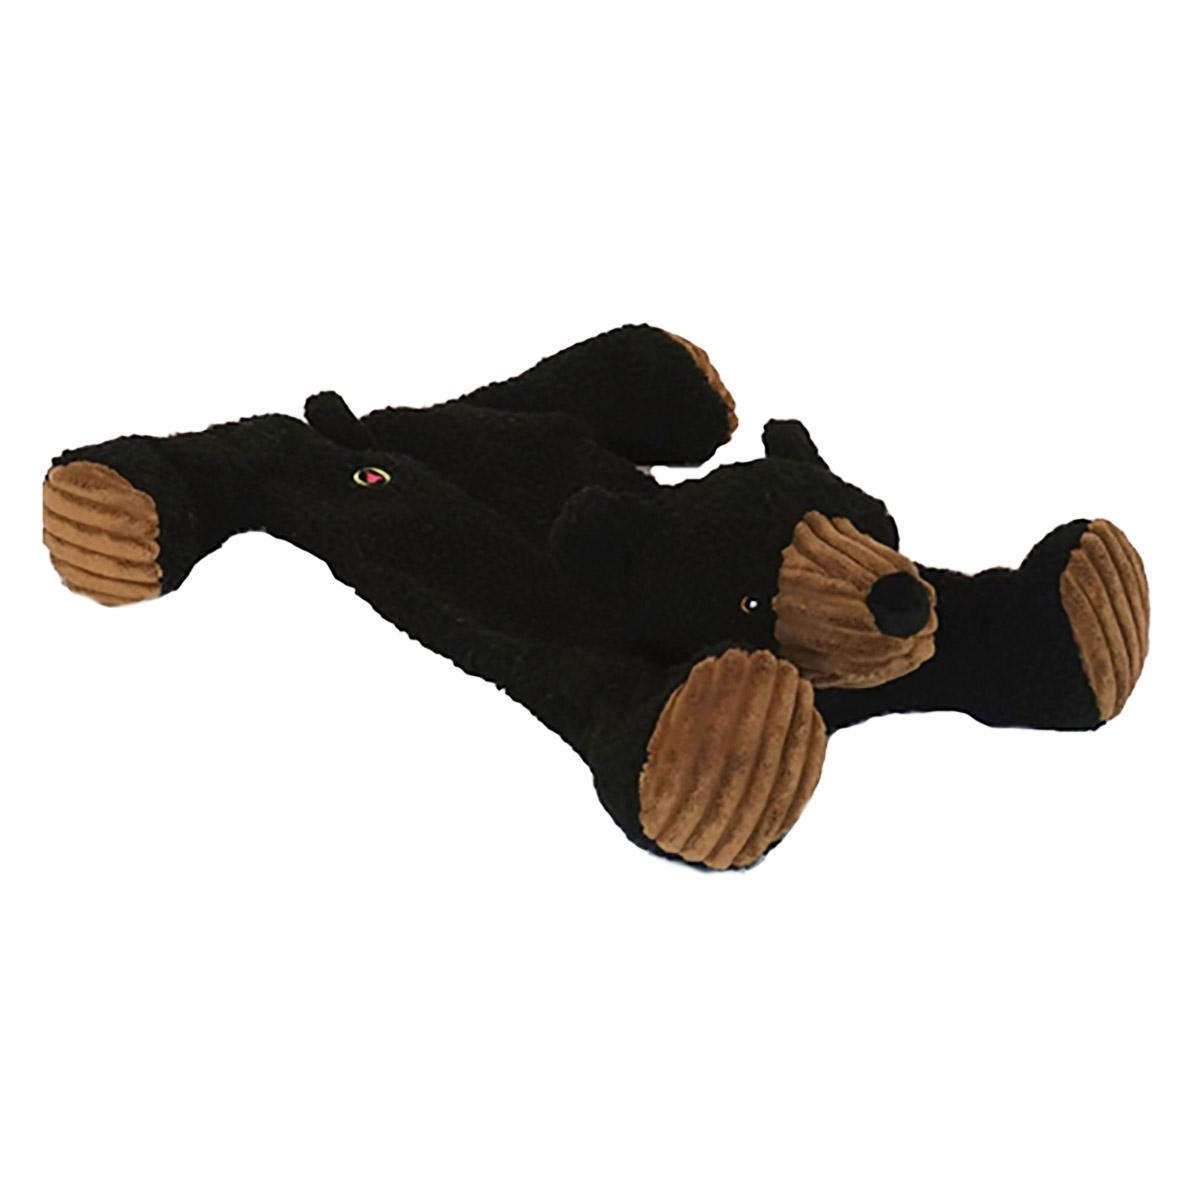 HuggleHounds Flatties Dog Toy - Bear